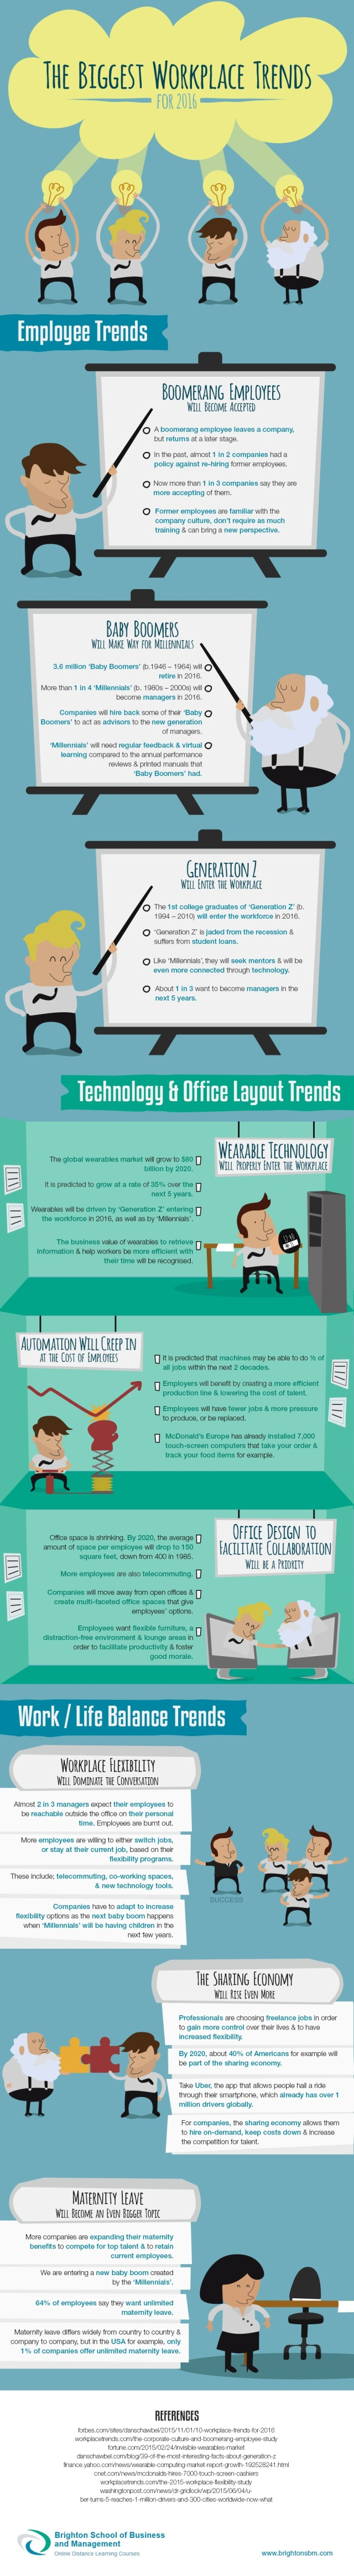 The-Biggest-Workplac-Trends-for-2016-Infographic